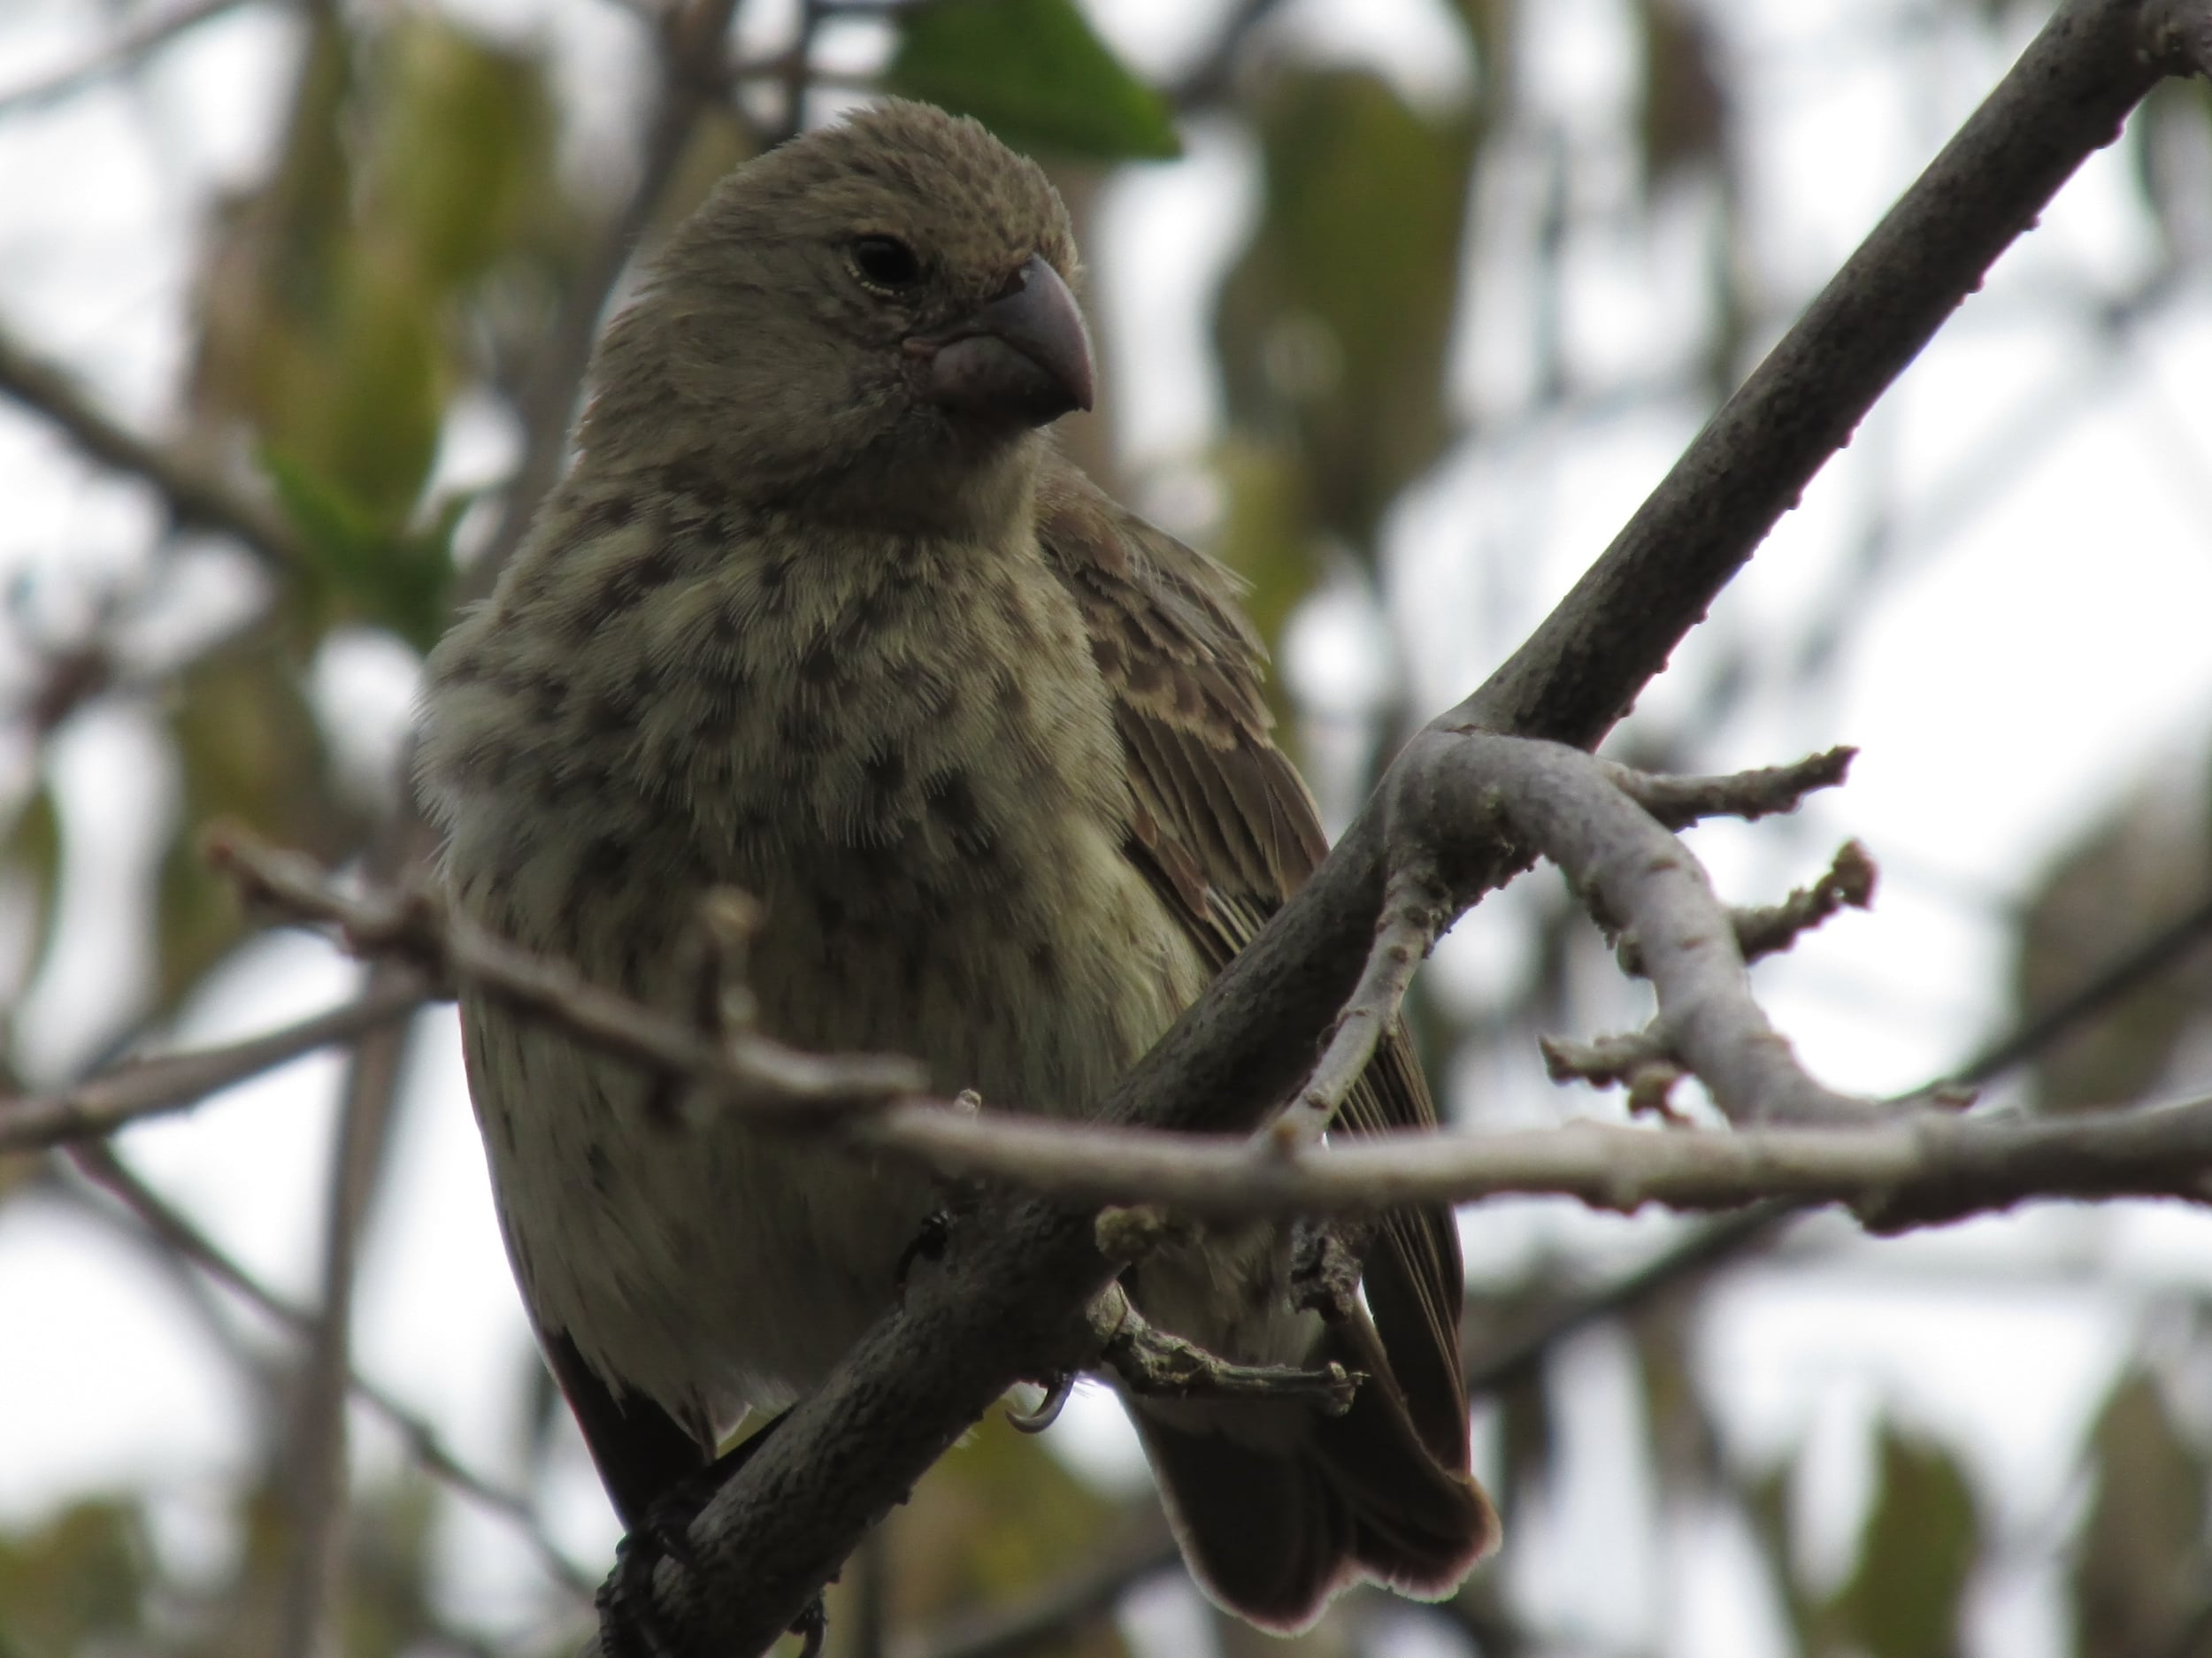 These finches are named after Darwin, but the mockingbirds were what inspired his idea of evolution.